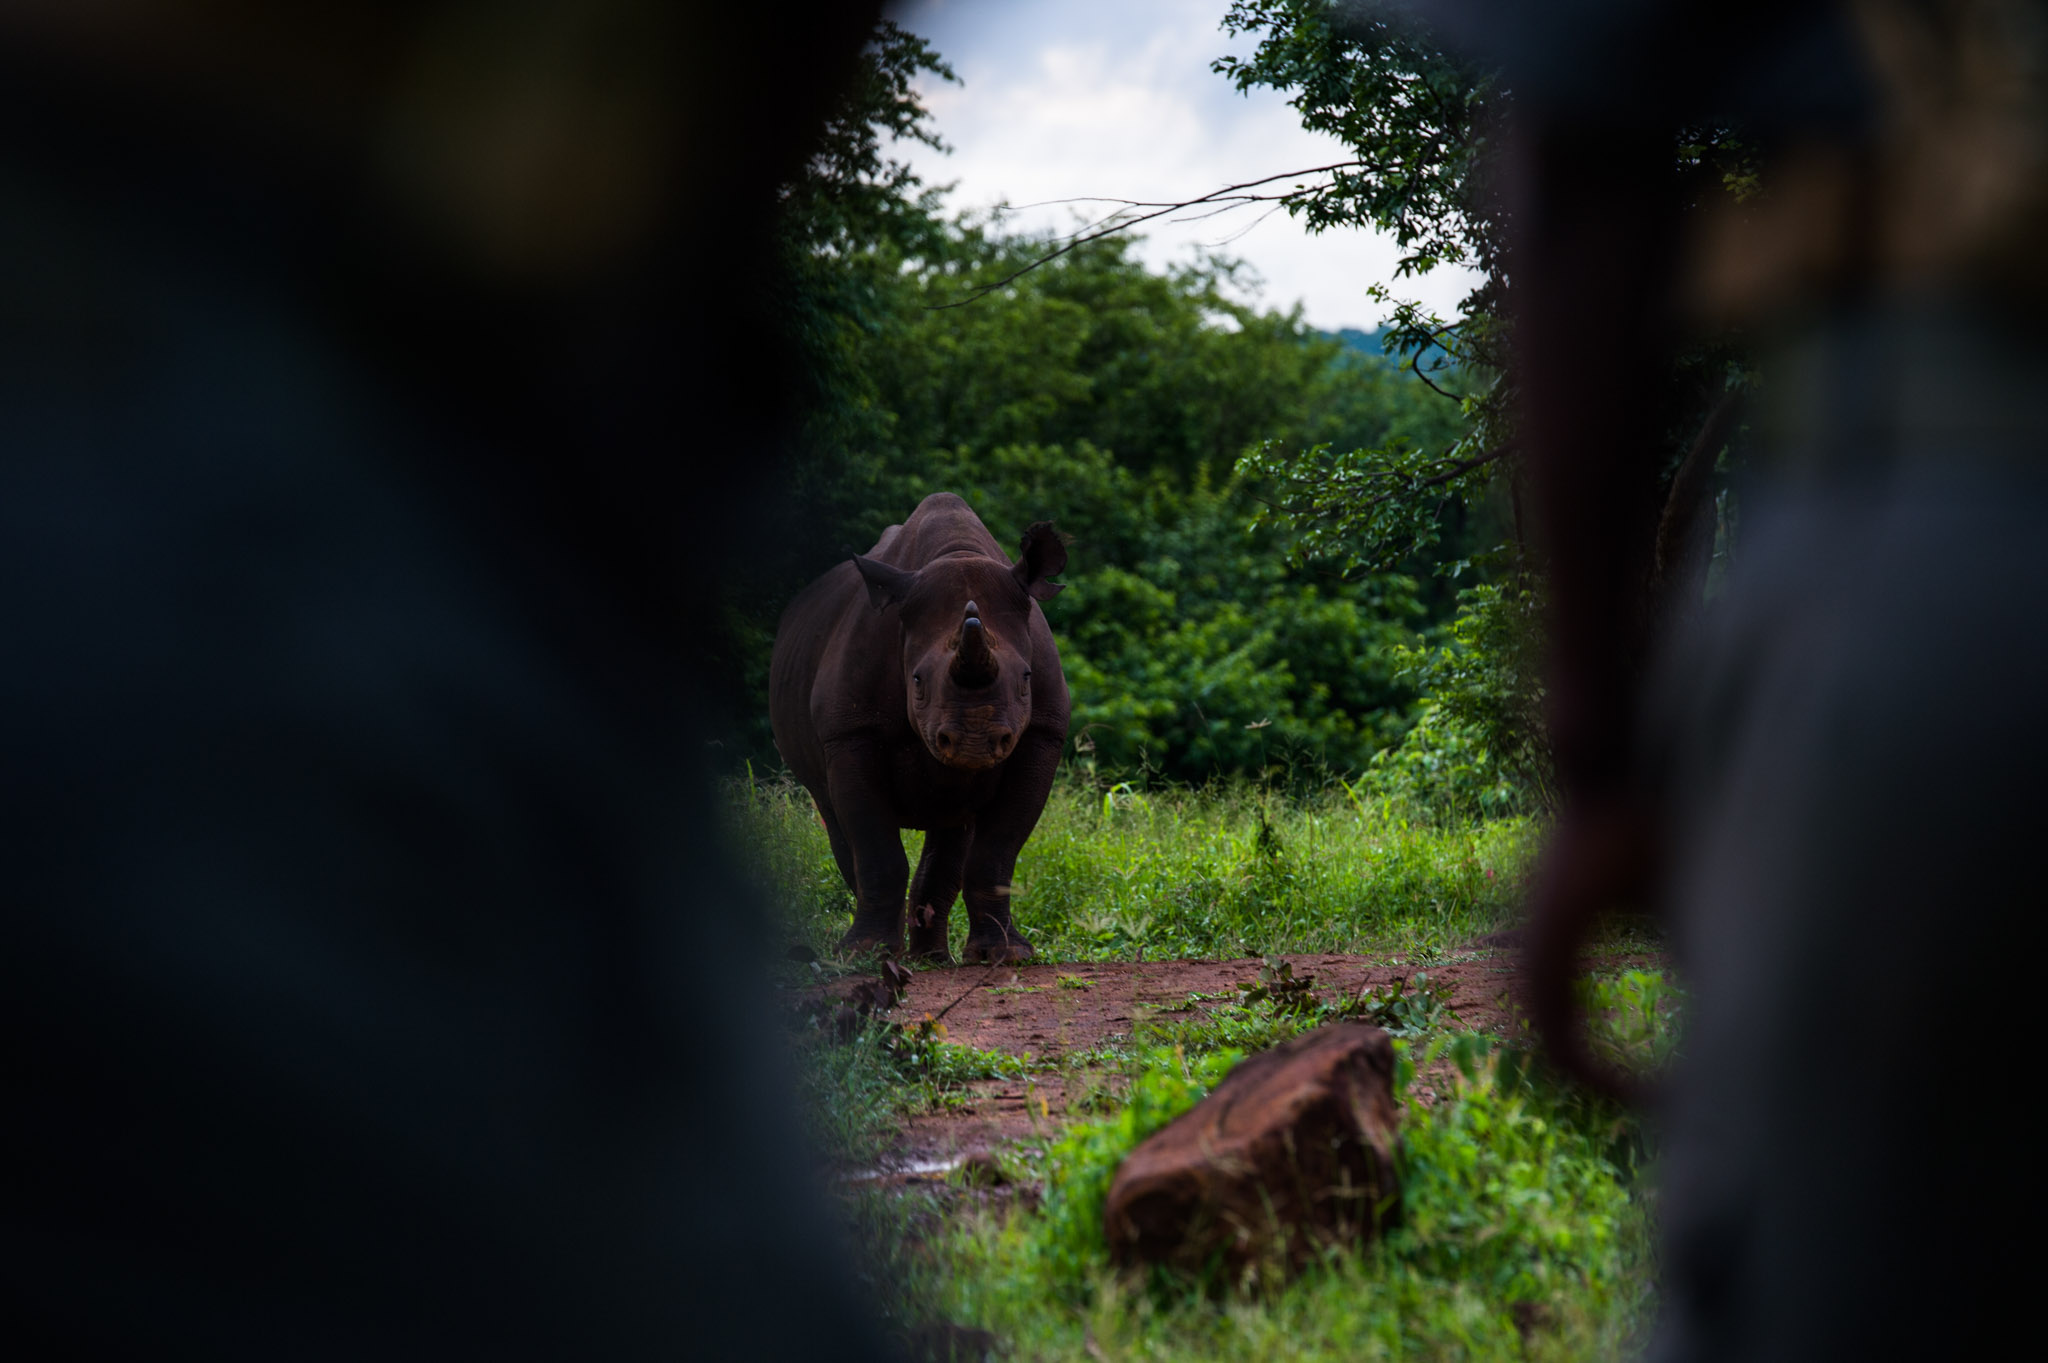 A female black rhino seen between two IAPF anti-poaching rangers in the Stanley and Livingstone Game Reserve, Zimbabwe—Photograph by Michael Hathorn, Ginkgo Agency